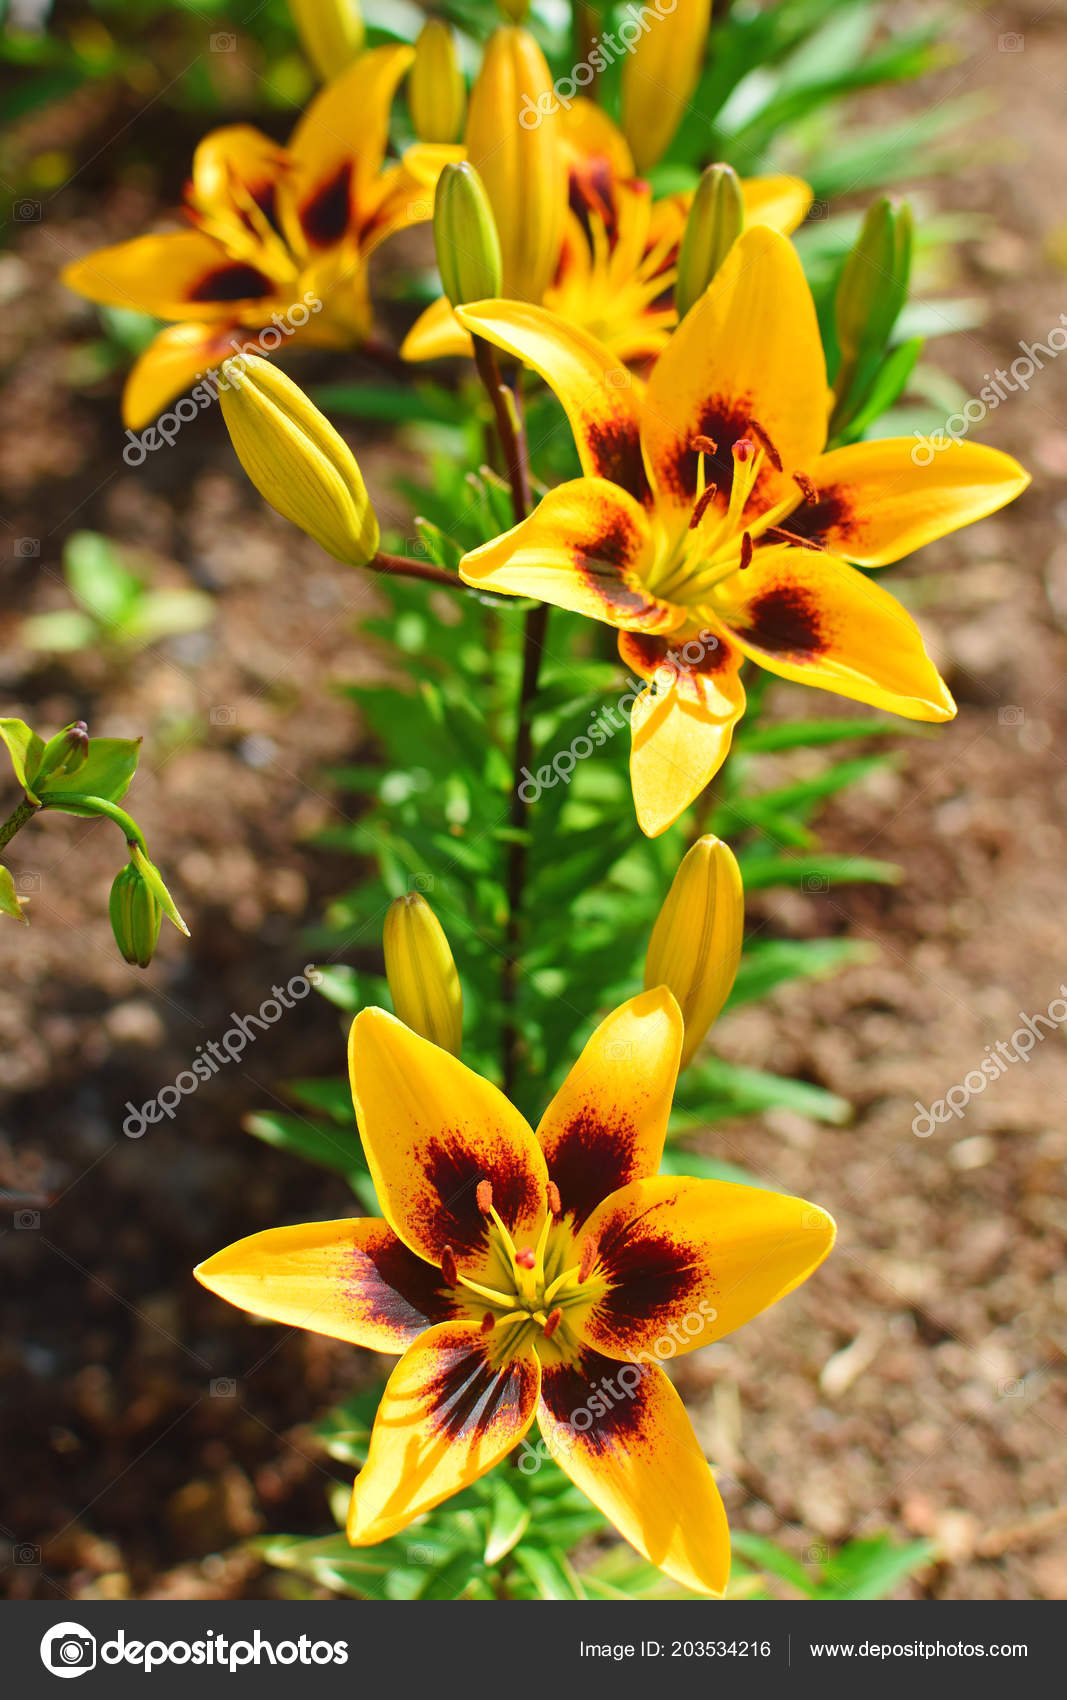 depositphotos stock photo yellow lily flower buds blurred